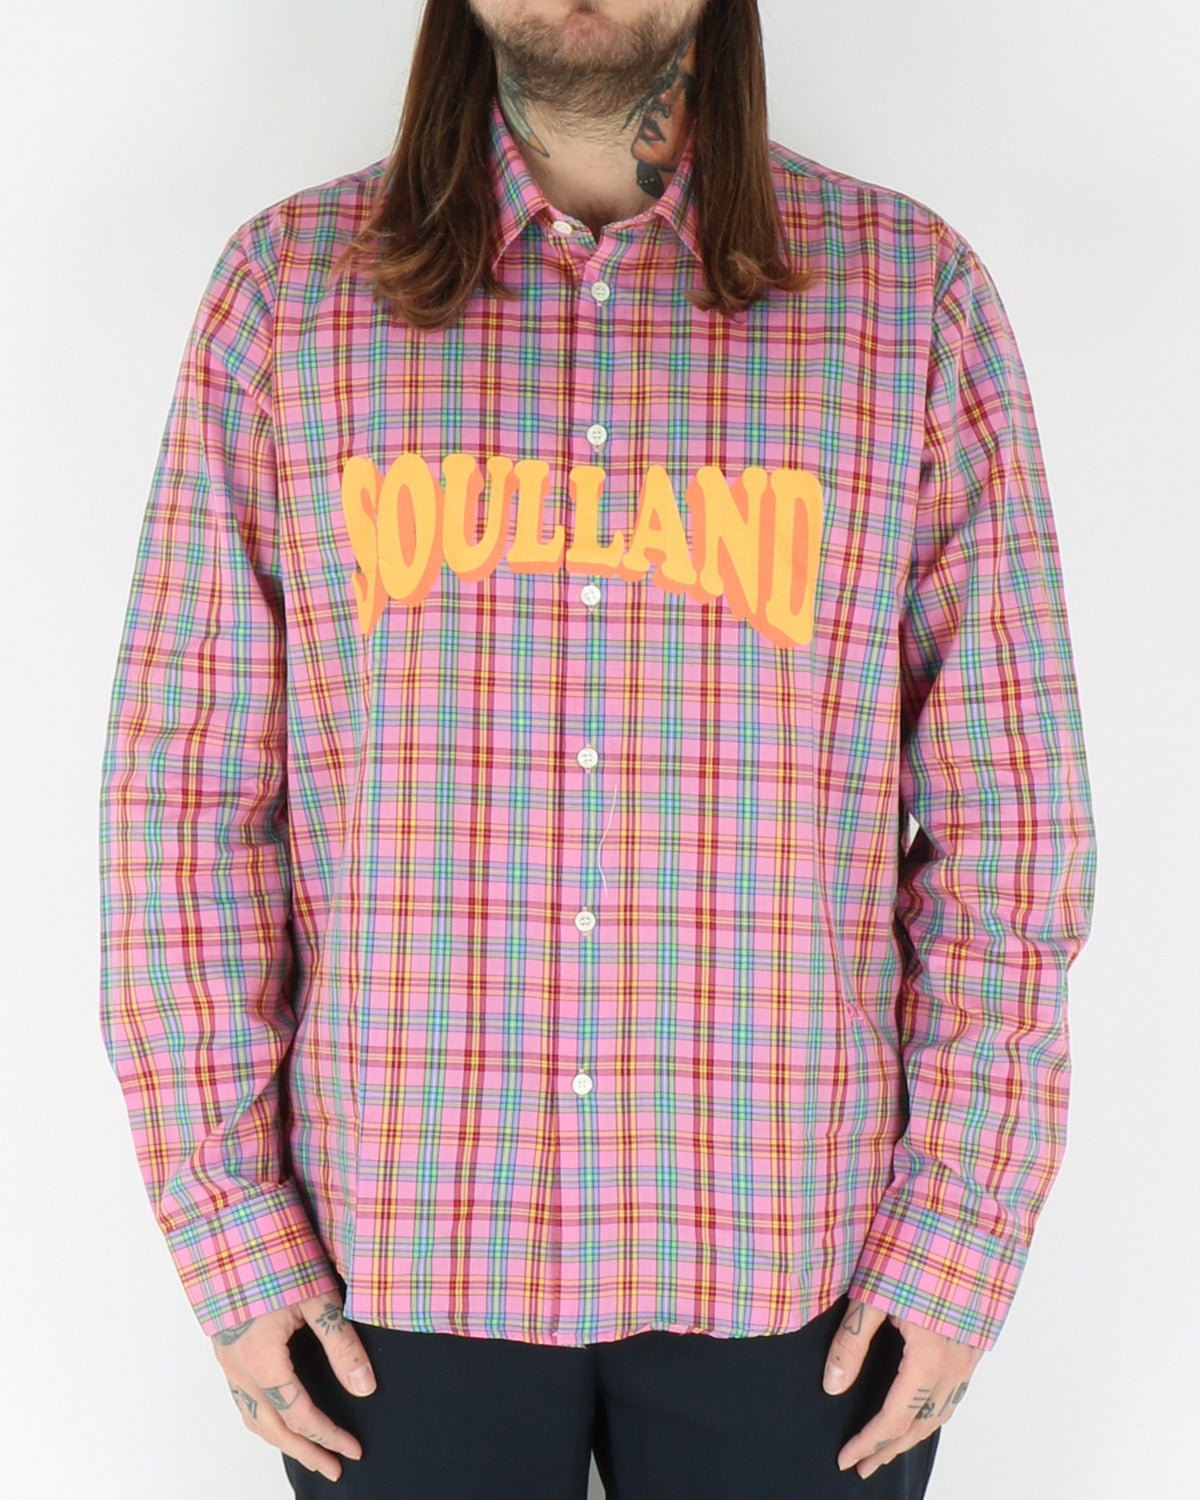 soulland_saul checked shirt_pink_3_3